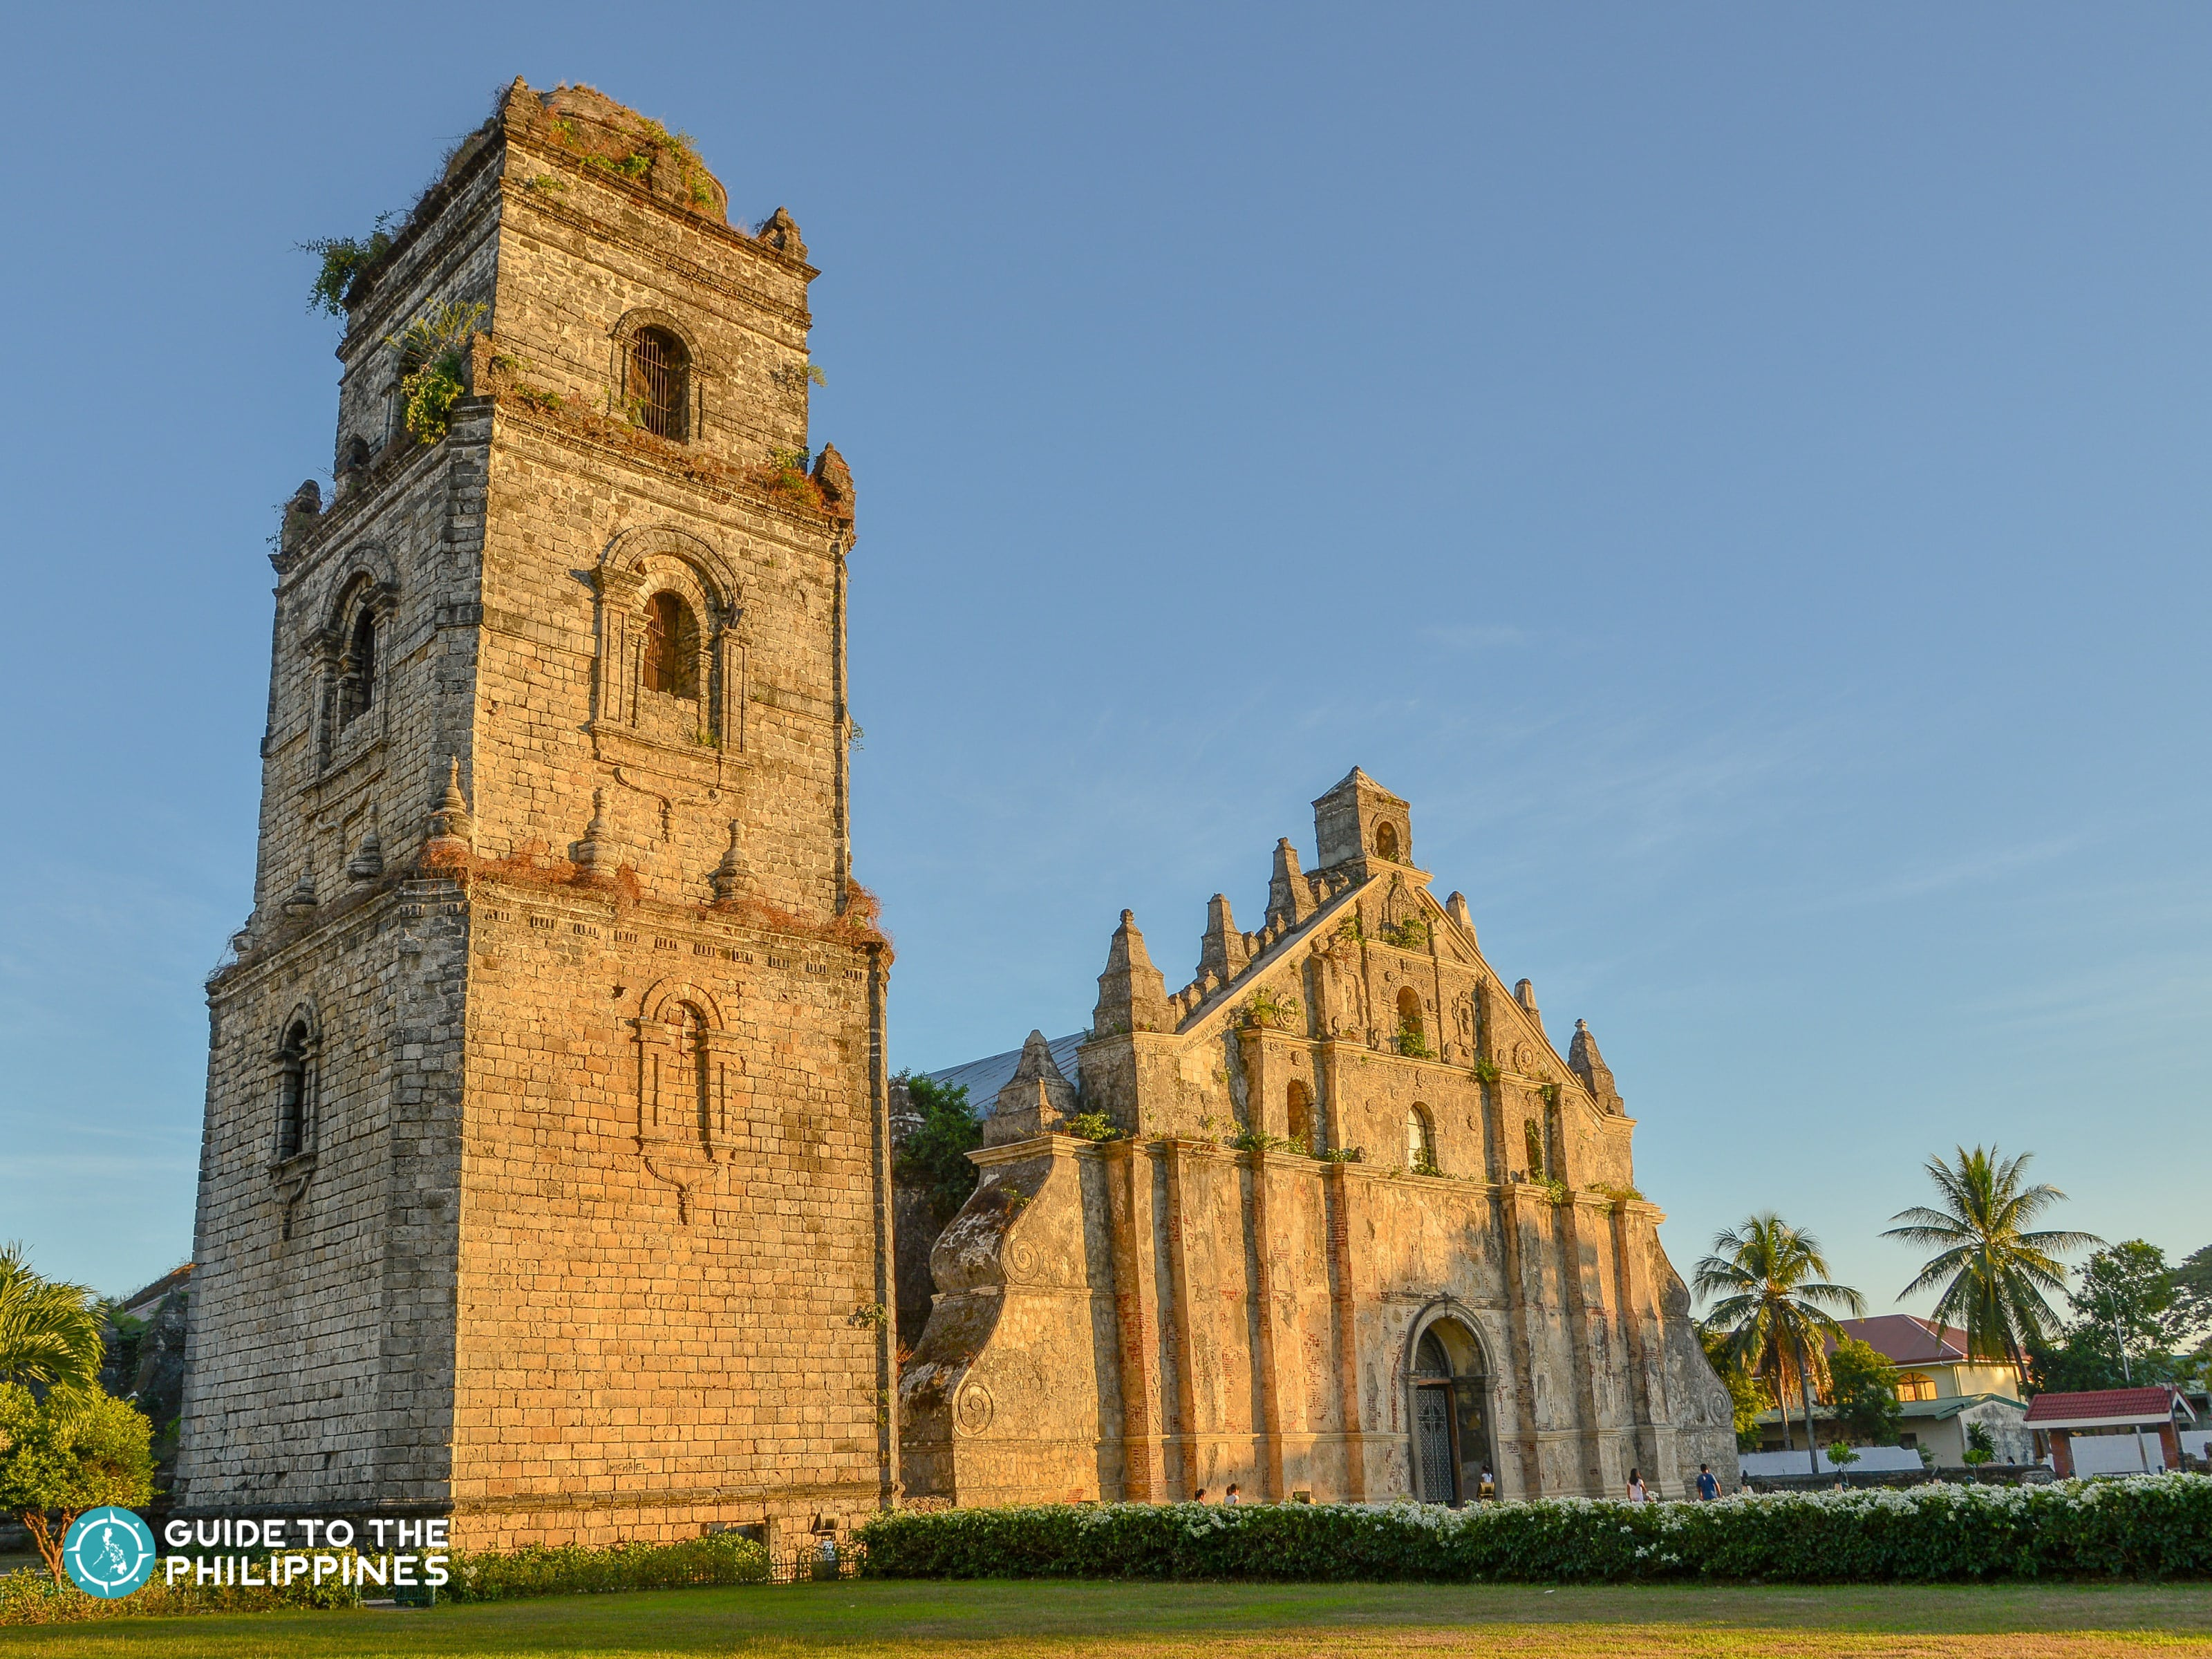 Sunrise over Paoay Church in Laoag